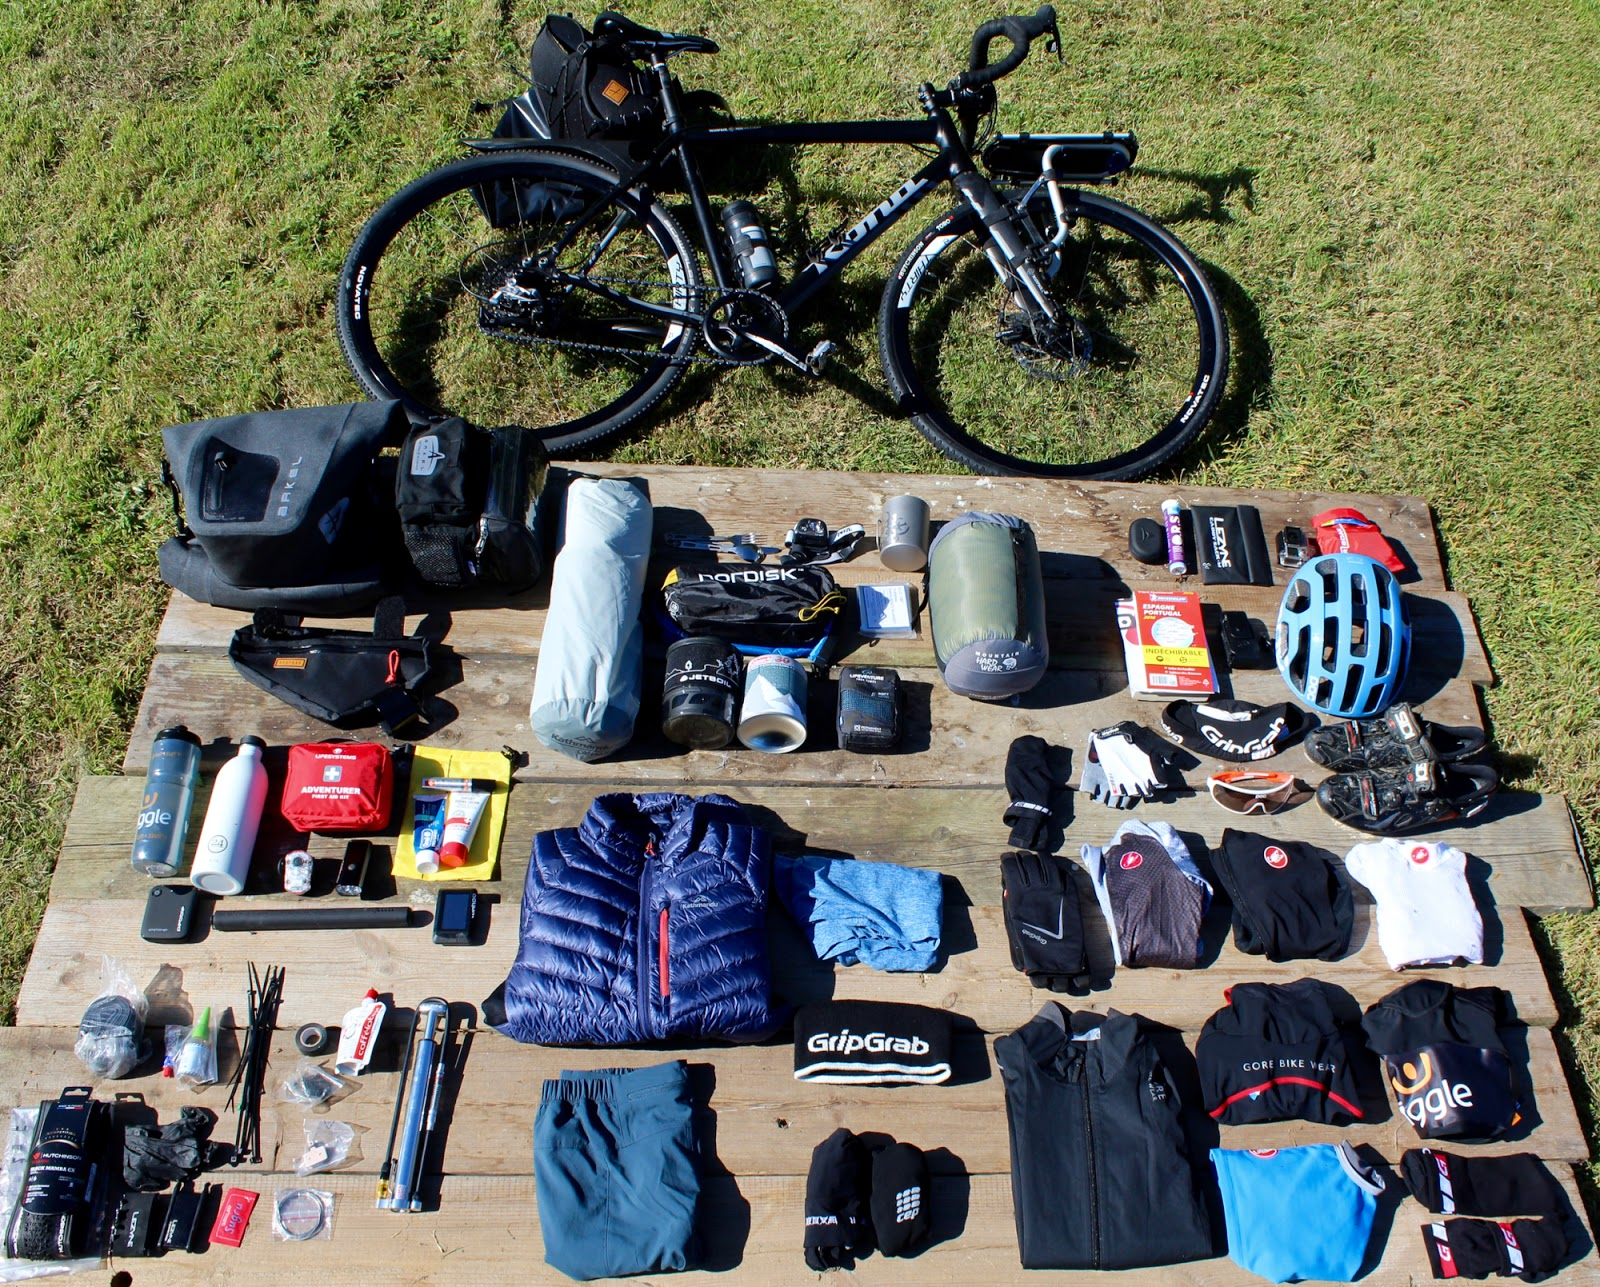 Top Tips for Bikepacking